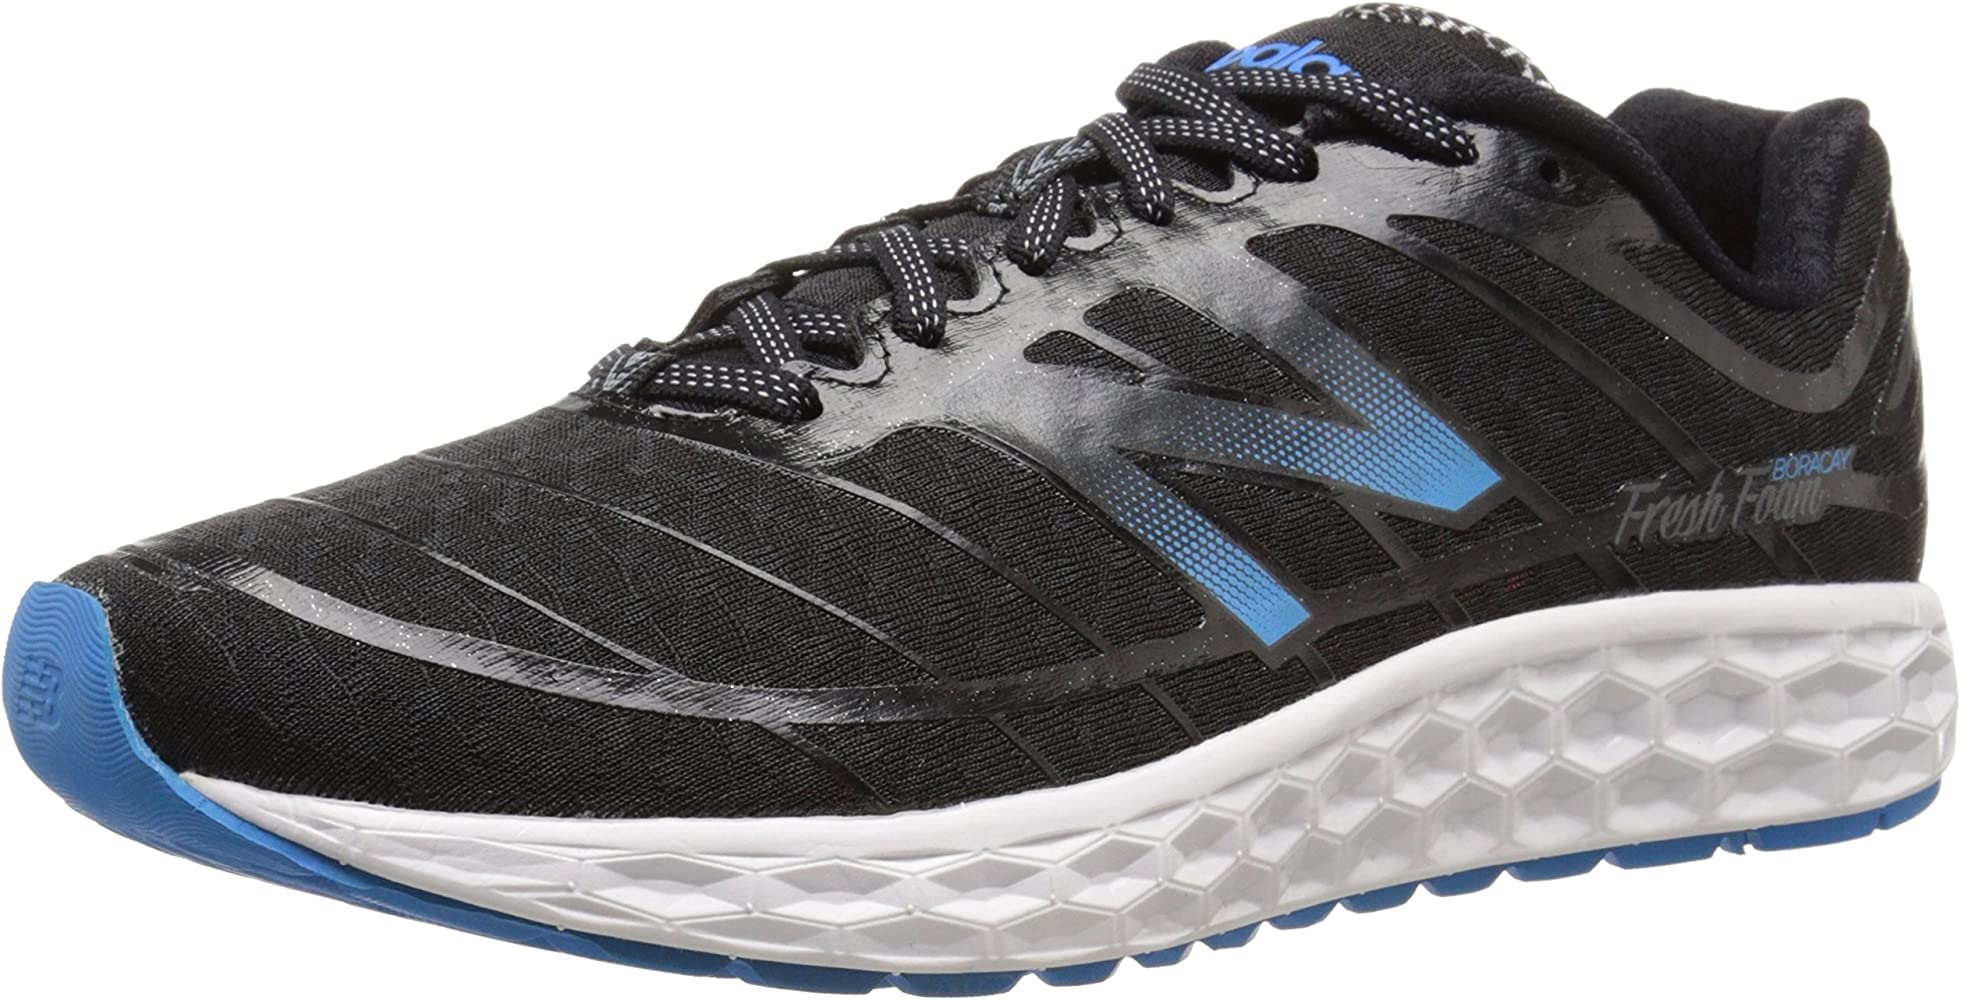 New Balance M980 D V2 - Zapatillas running para hombre, Negro (bs2 black/silver), 49: Amazon.es: Zapatos y complementos